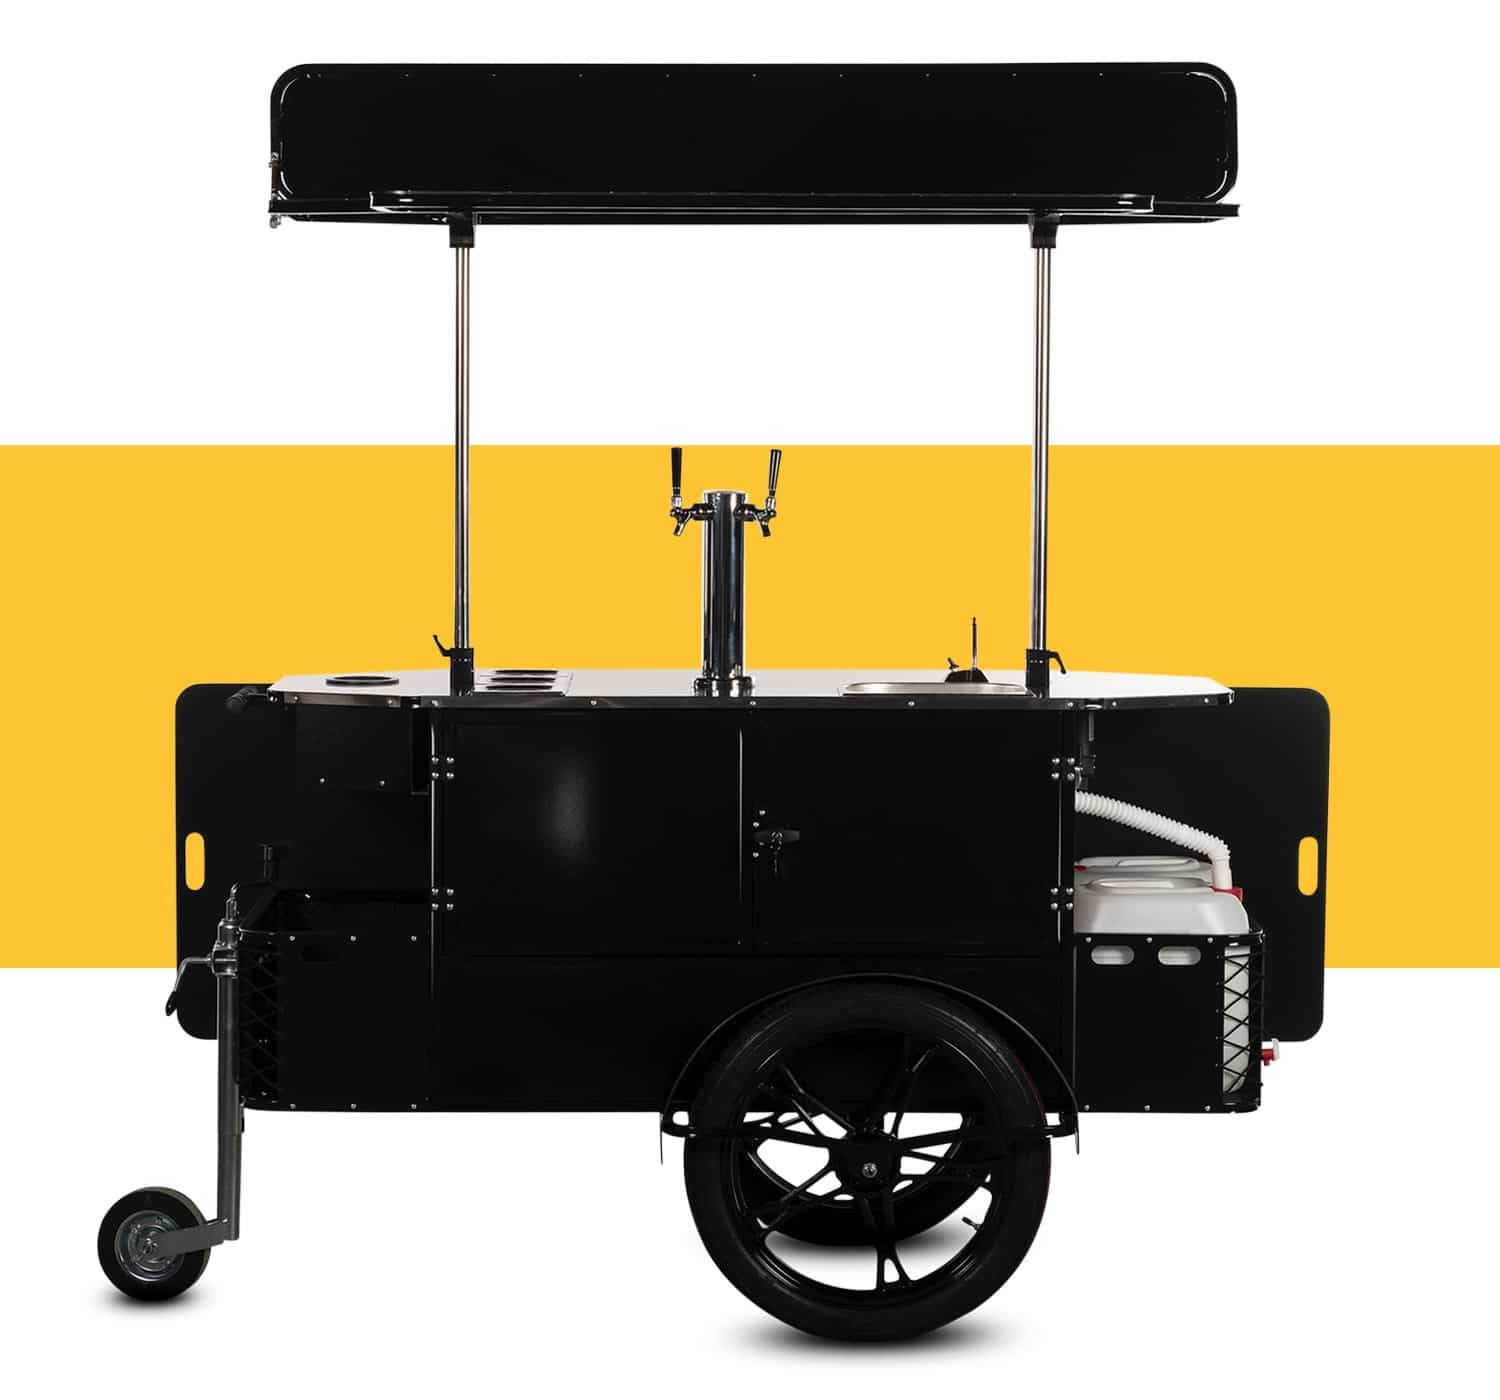 Beverage cart for sale by Bizz On Wheels